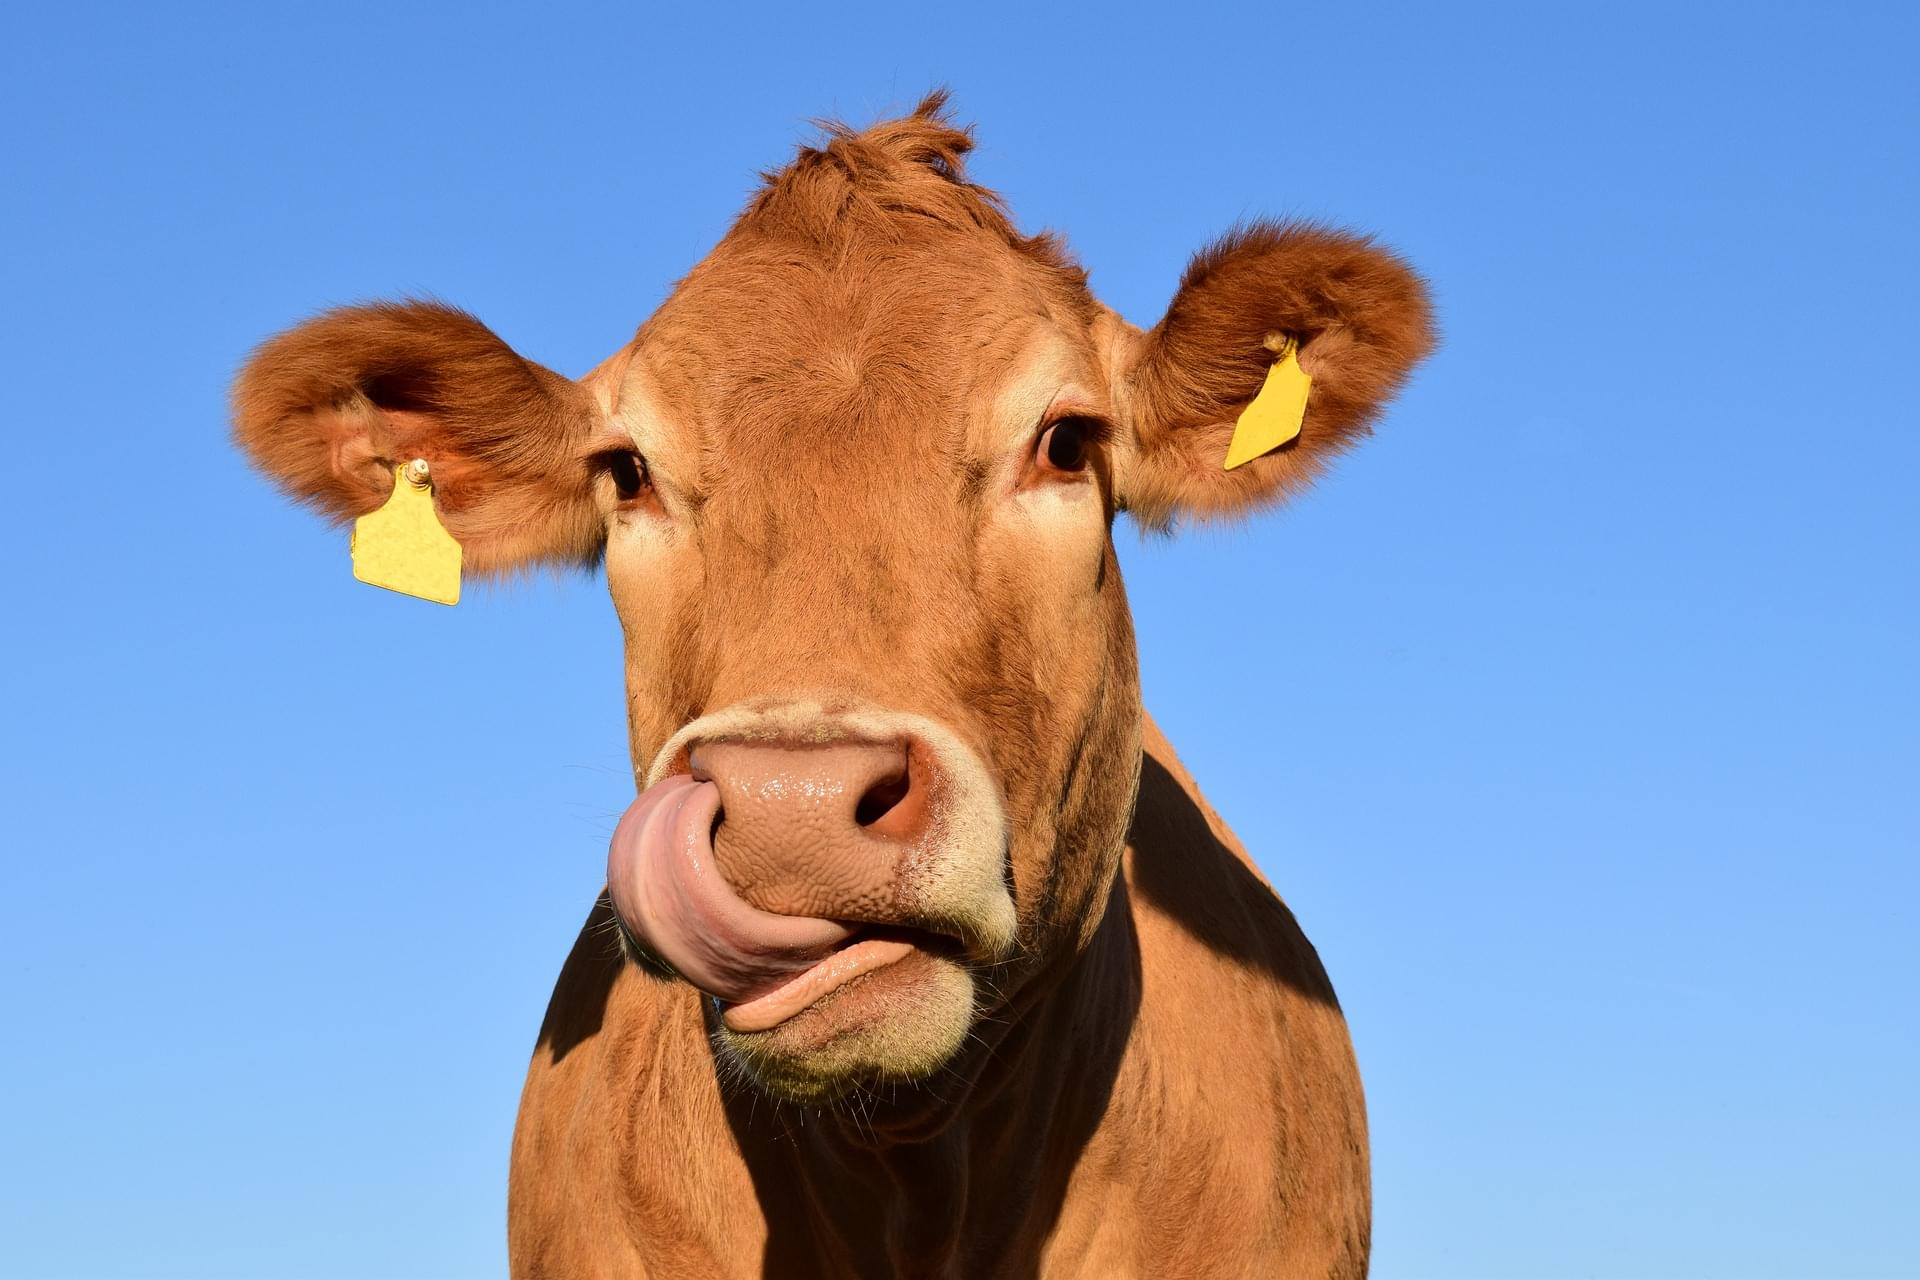 A Woman Coated Her Car in Cow Poop to Keep It Cool